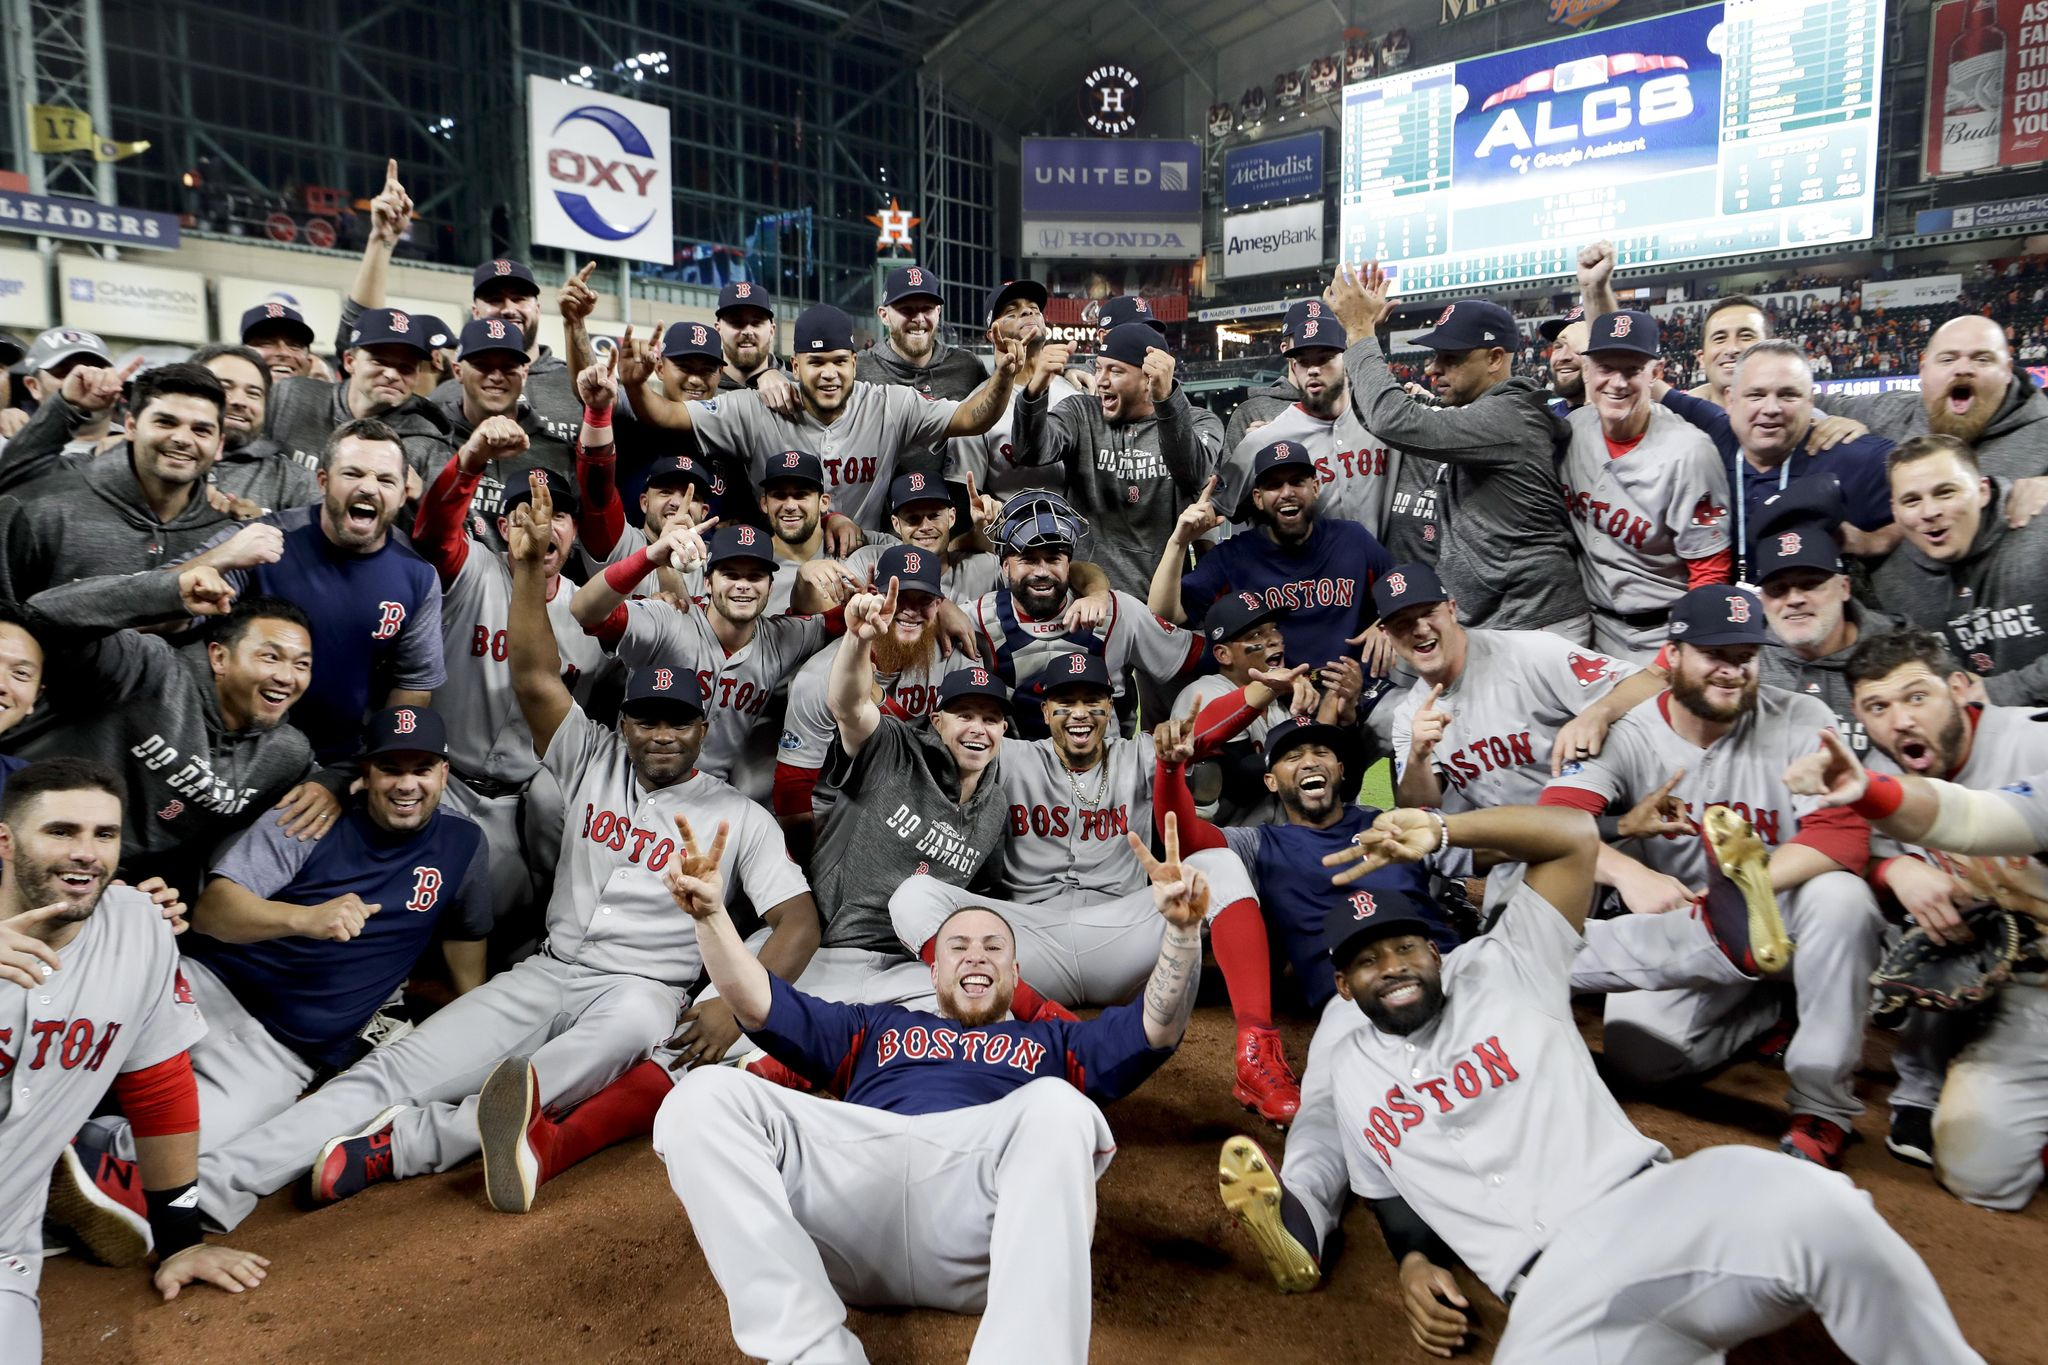 Alcs_red_sox_astros_baseball_77558_s2048x1365